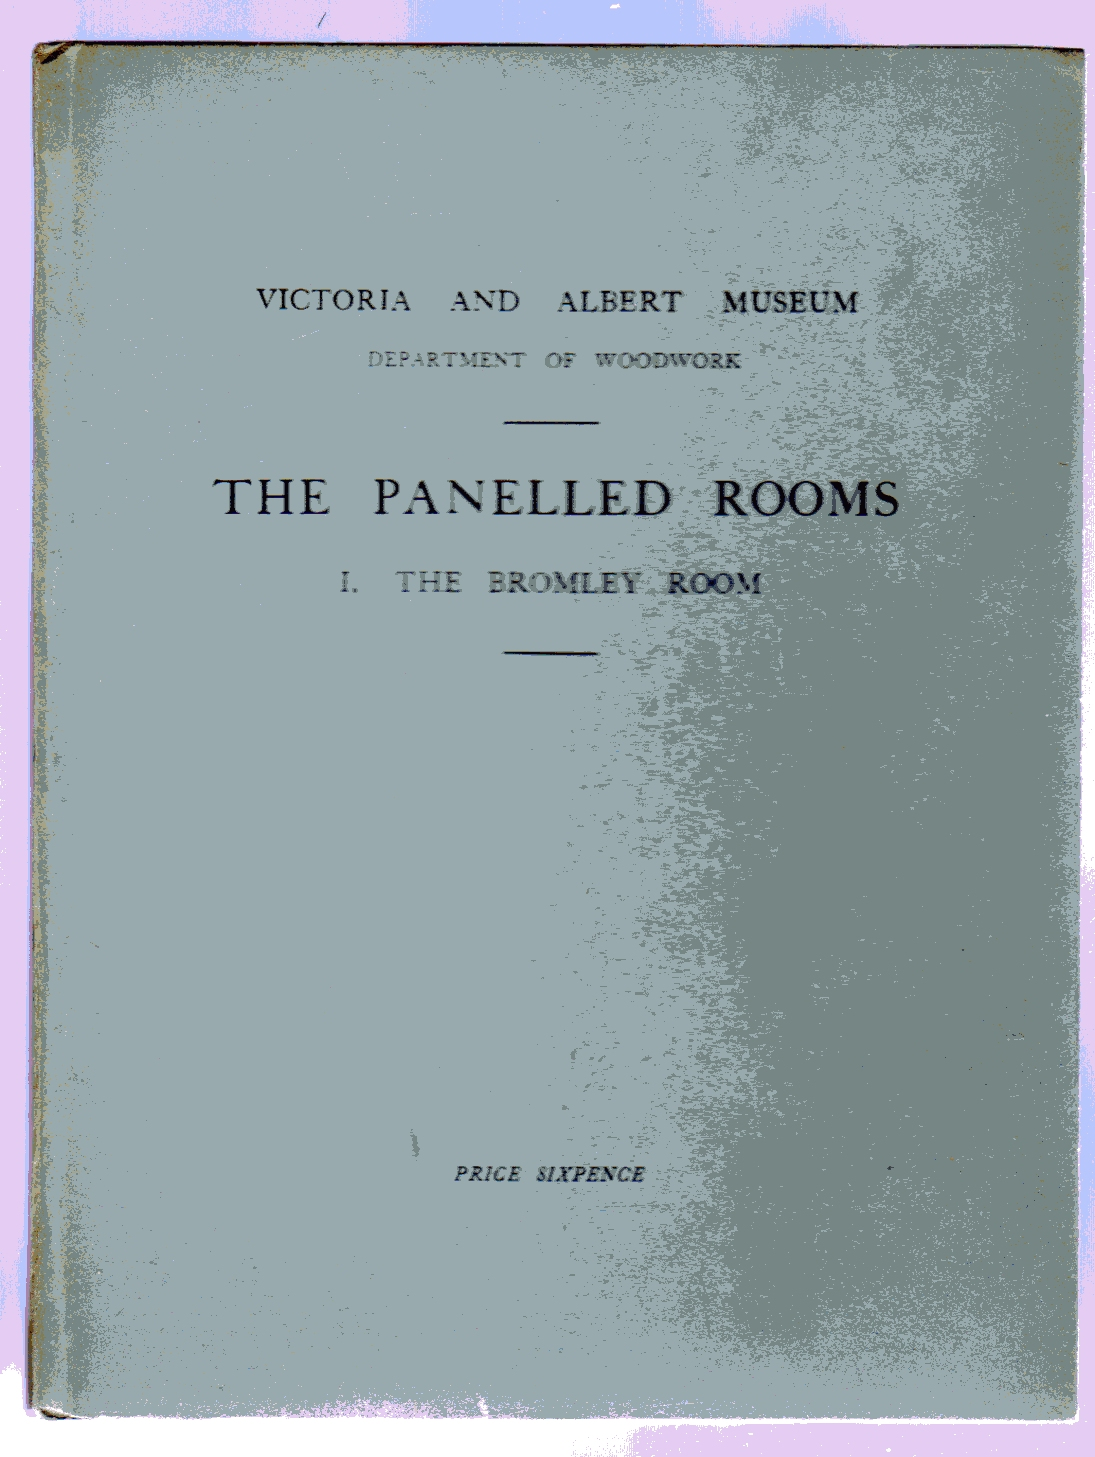 Image for The Panelled Rooms, 1. The Bromley Room. Victoria & Albert Museum, Department of Woodwork